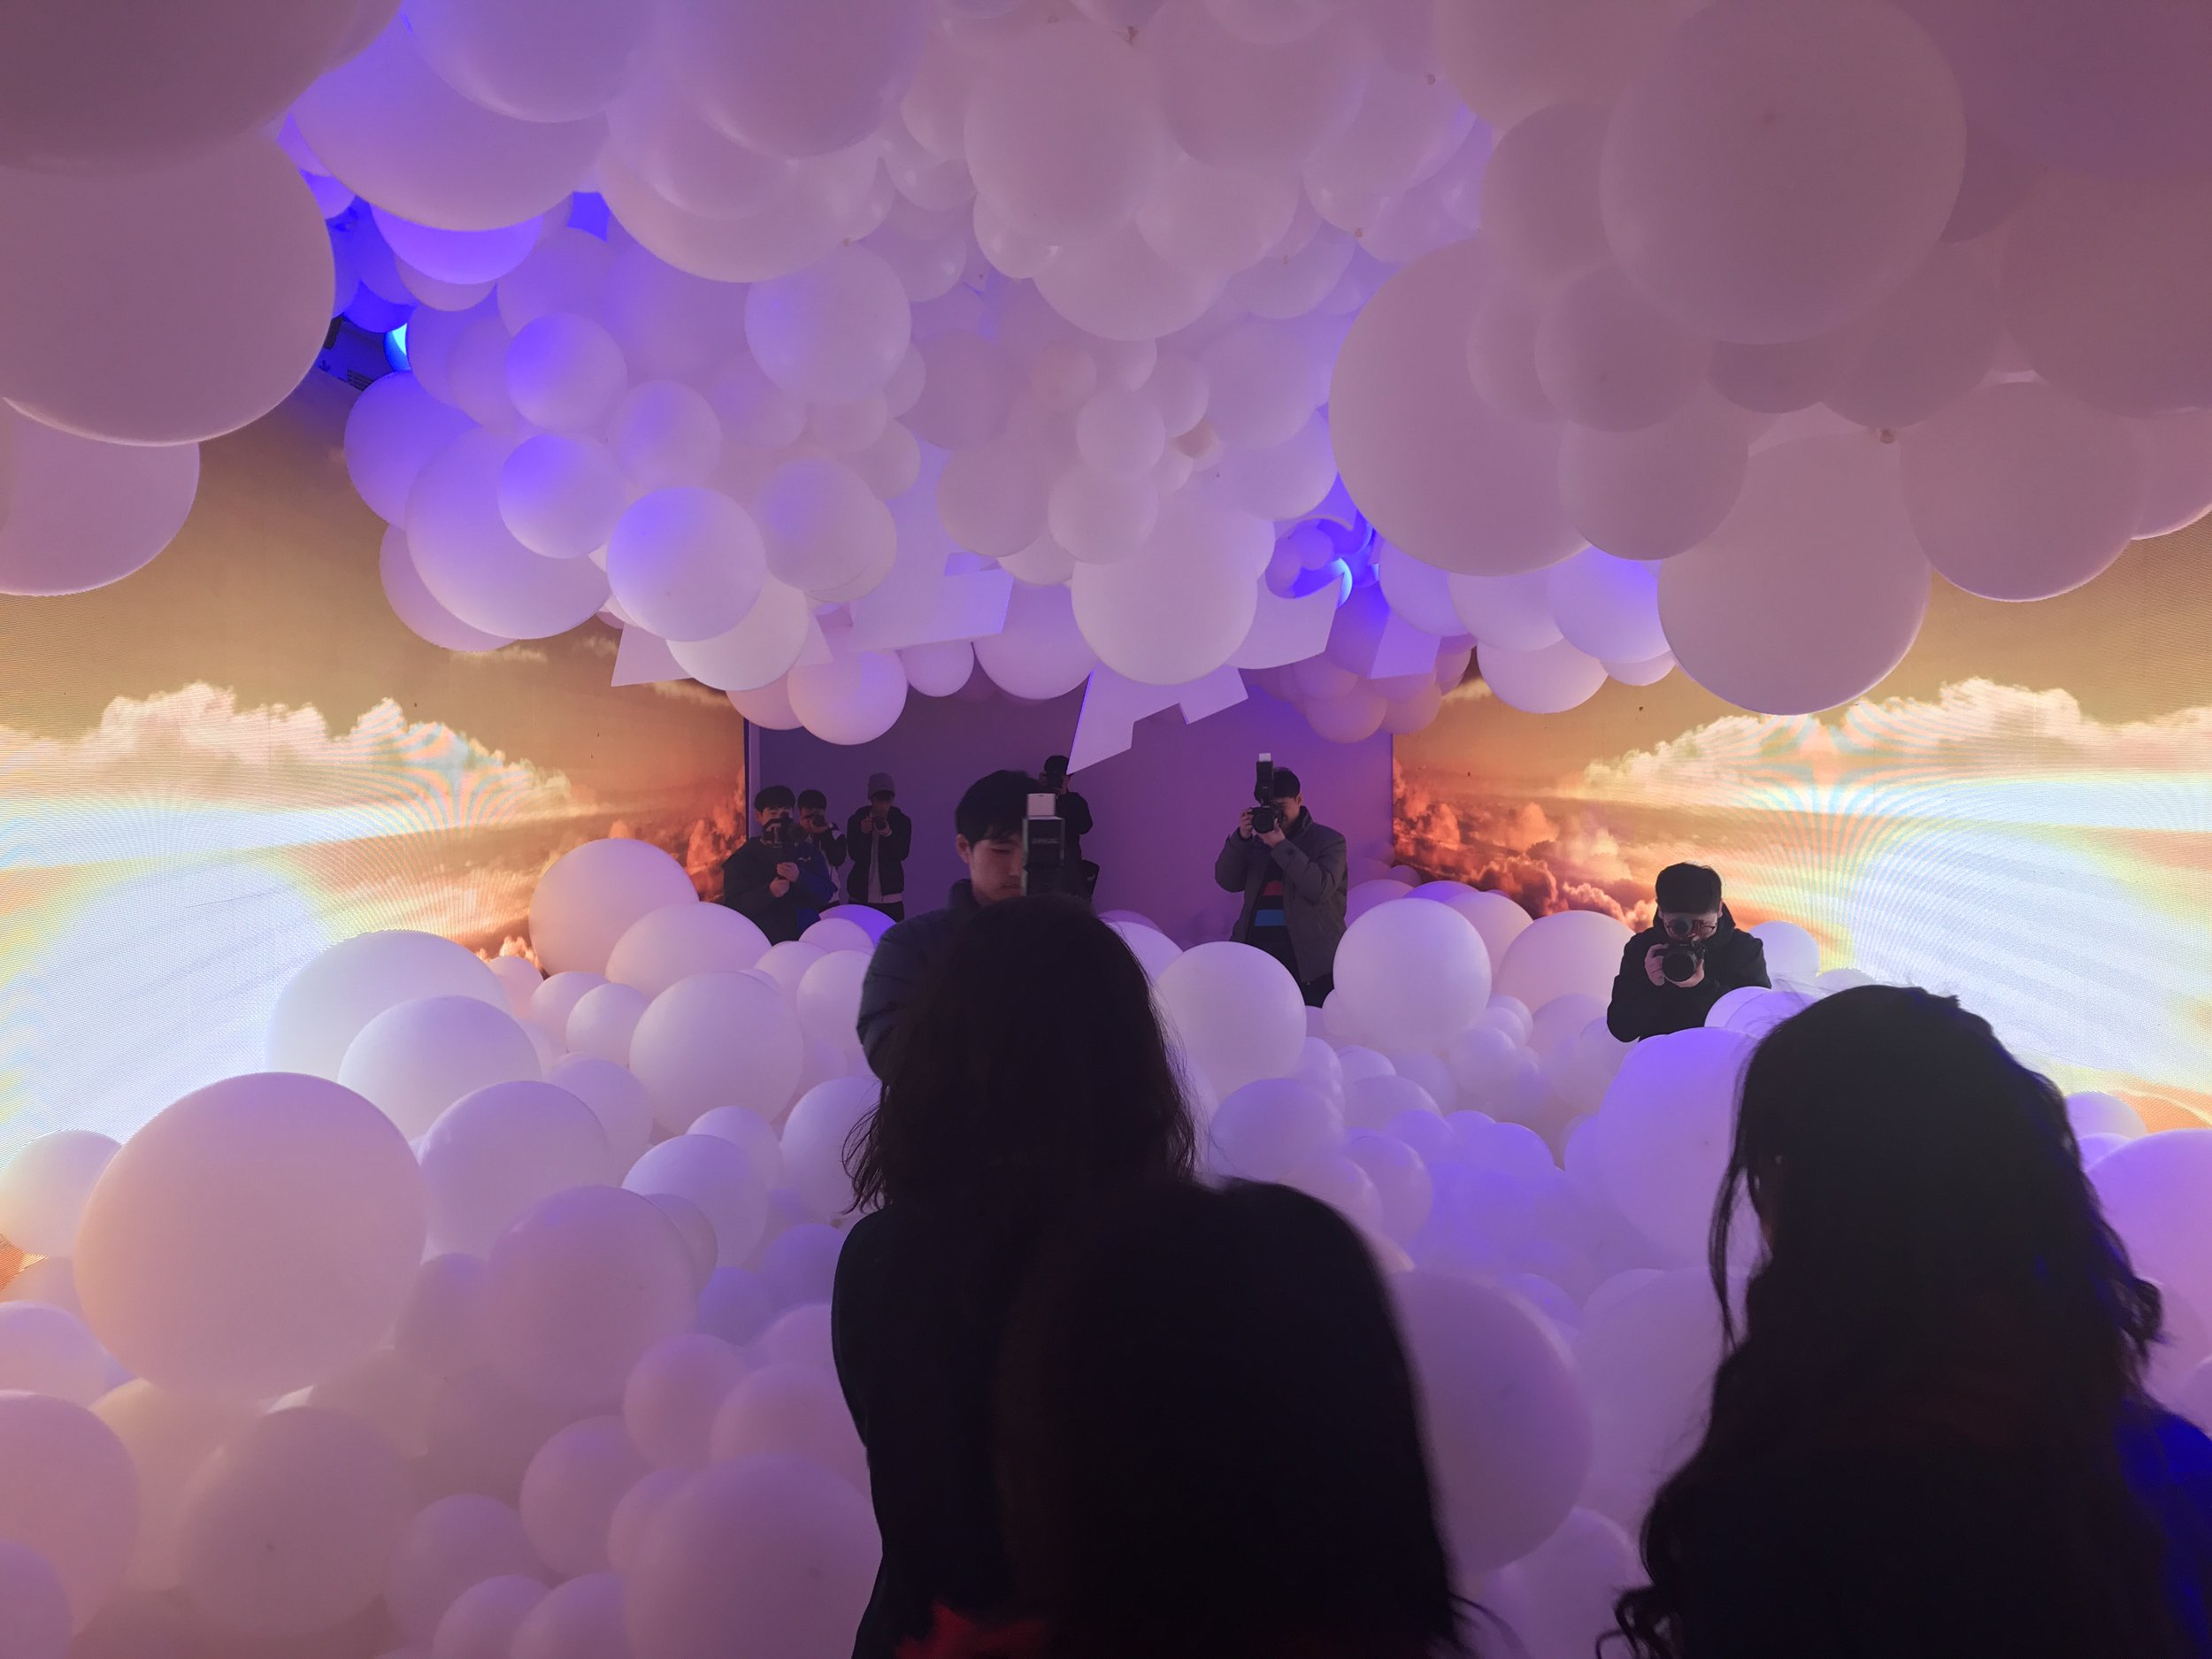 Like the event in Seoul, the Shanghai launch event included experiential elements as well. Here, a room bordered by video displays and filled with balloons brought to life the cloud-like cushioning offered by Nike React. These images don't do the experience justice, but hopefully they give you at least a taste for the amazing work done by Nike's brand & communications teams in support of product launches.